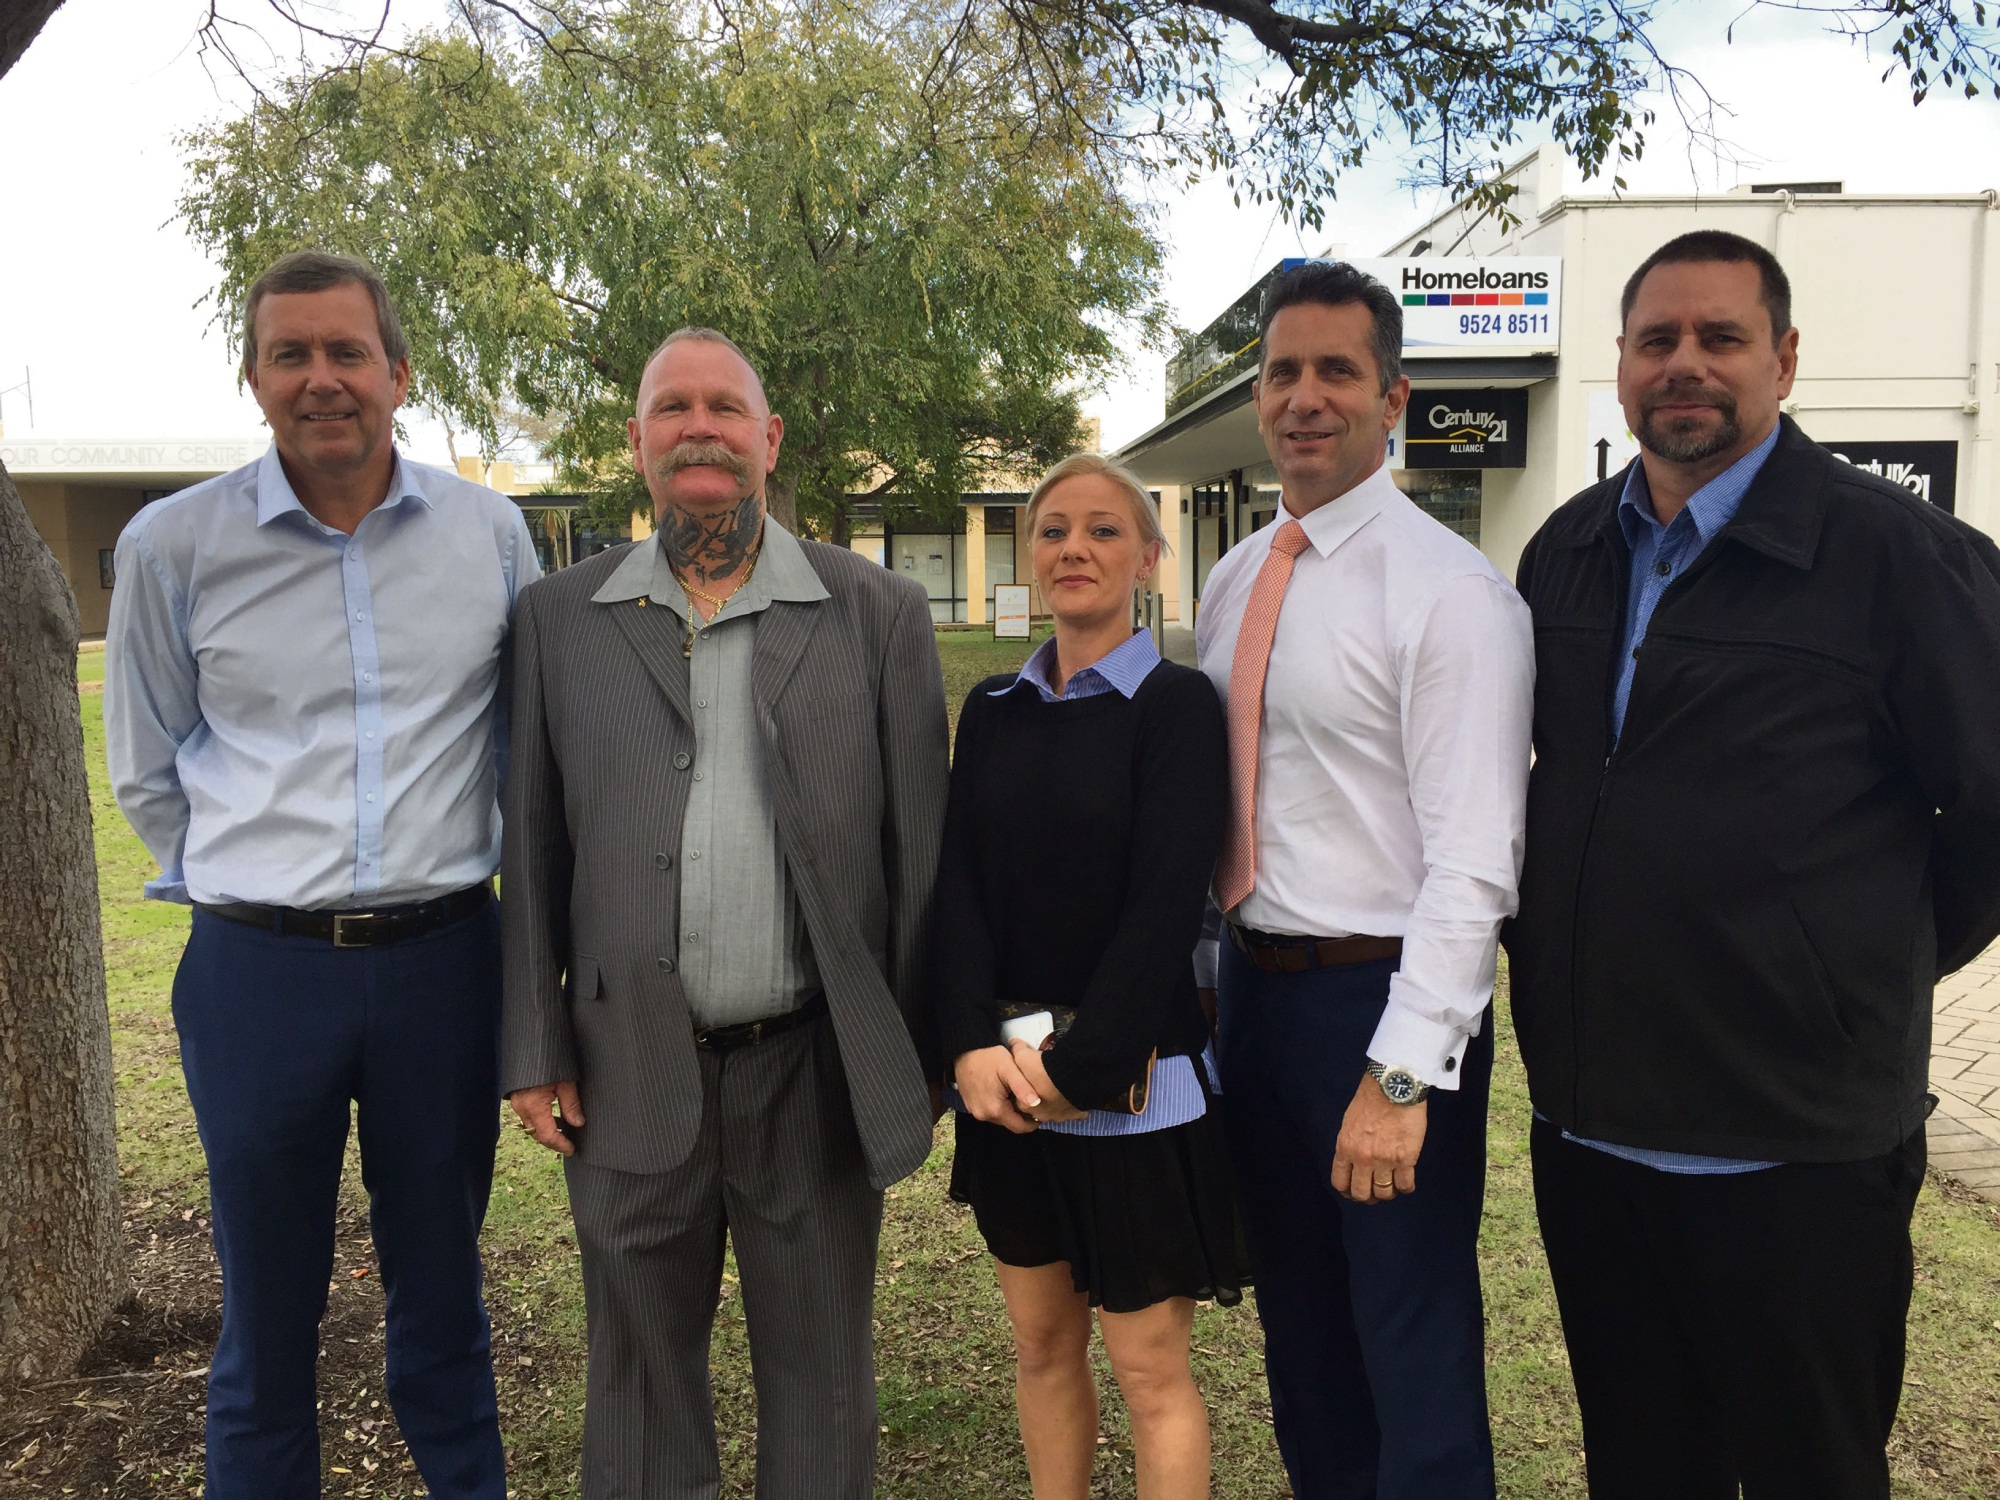 Baldivis MLA Reece Whitby, WAHA chief executive Owen Farmer, WAHA secretary Tanya Waugh, Warnbro MLA Paul Papalia and WAHA board member Steven Brown.